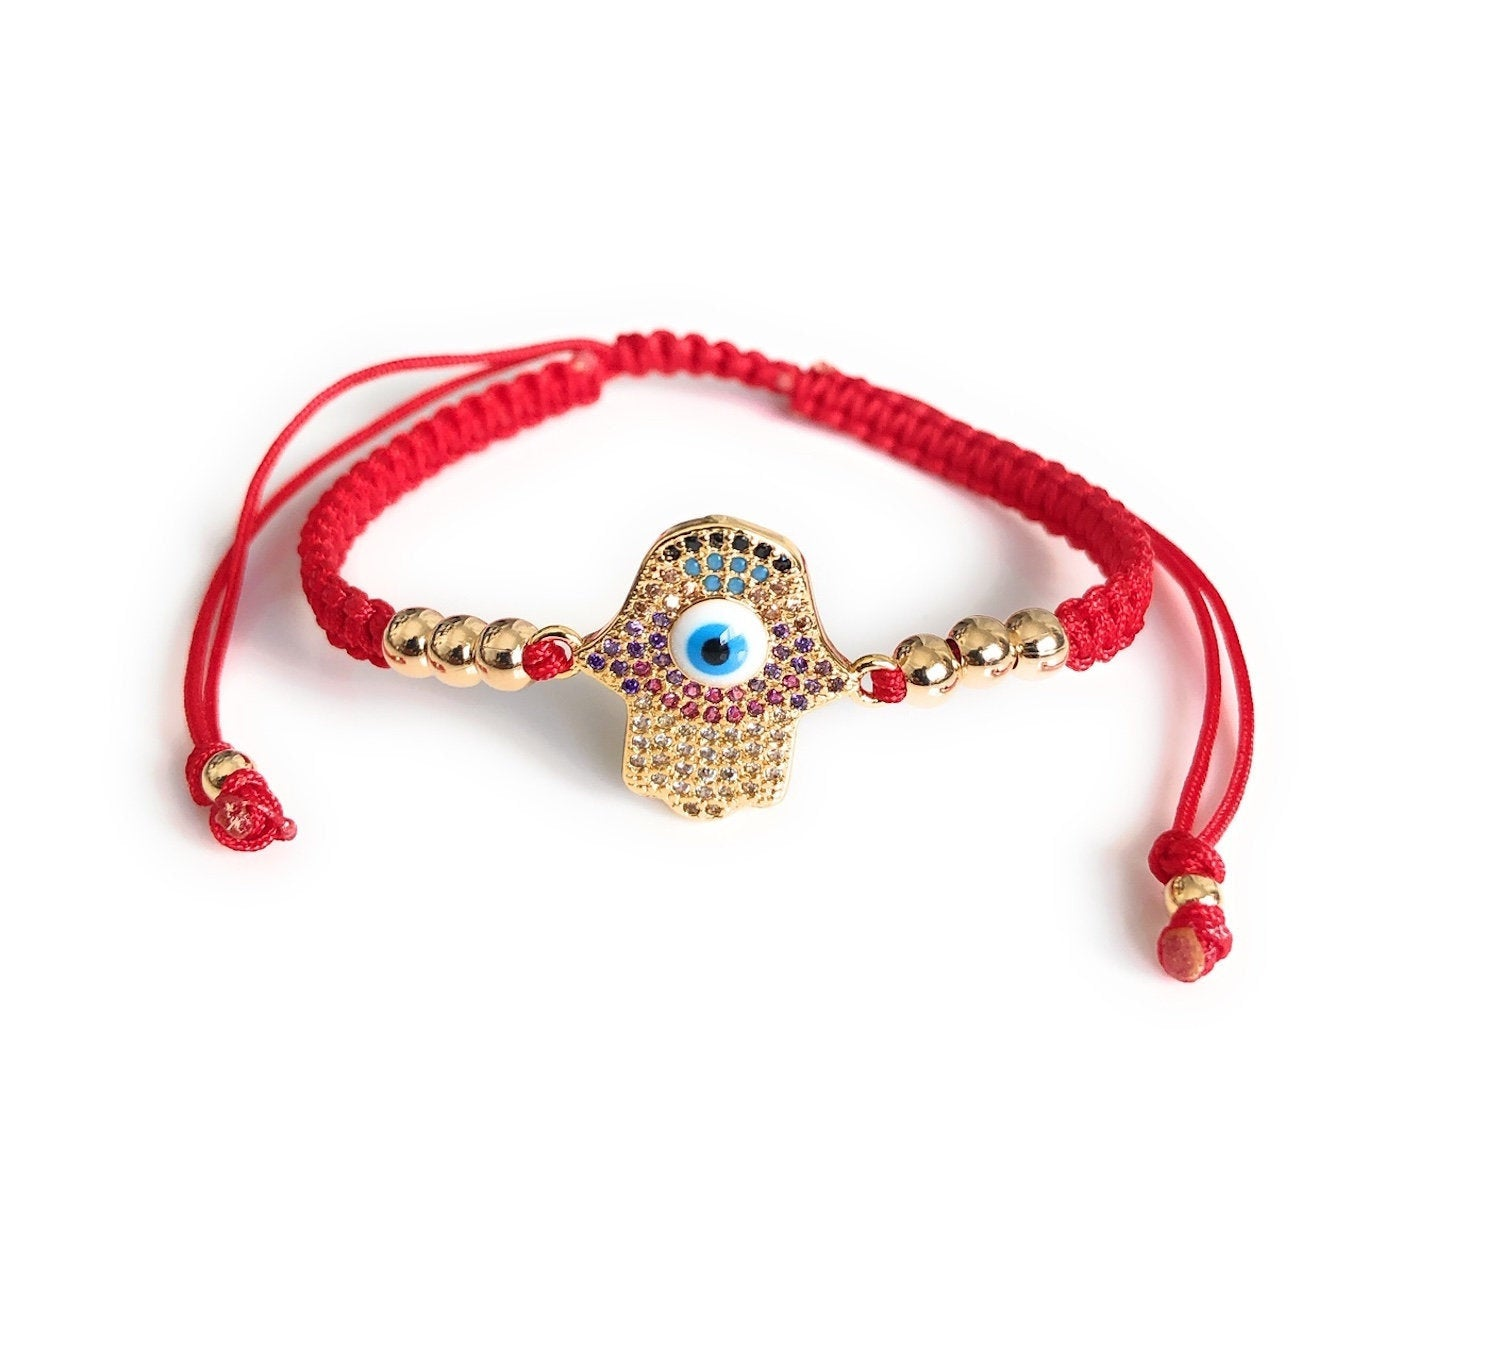 Powerful Red Bracelet